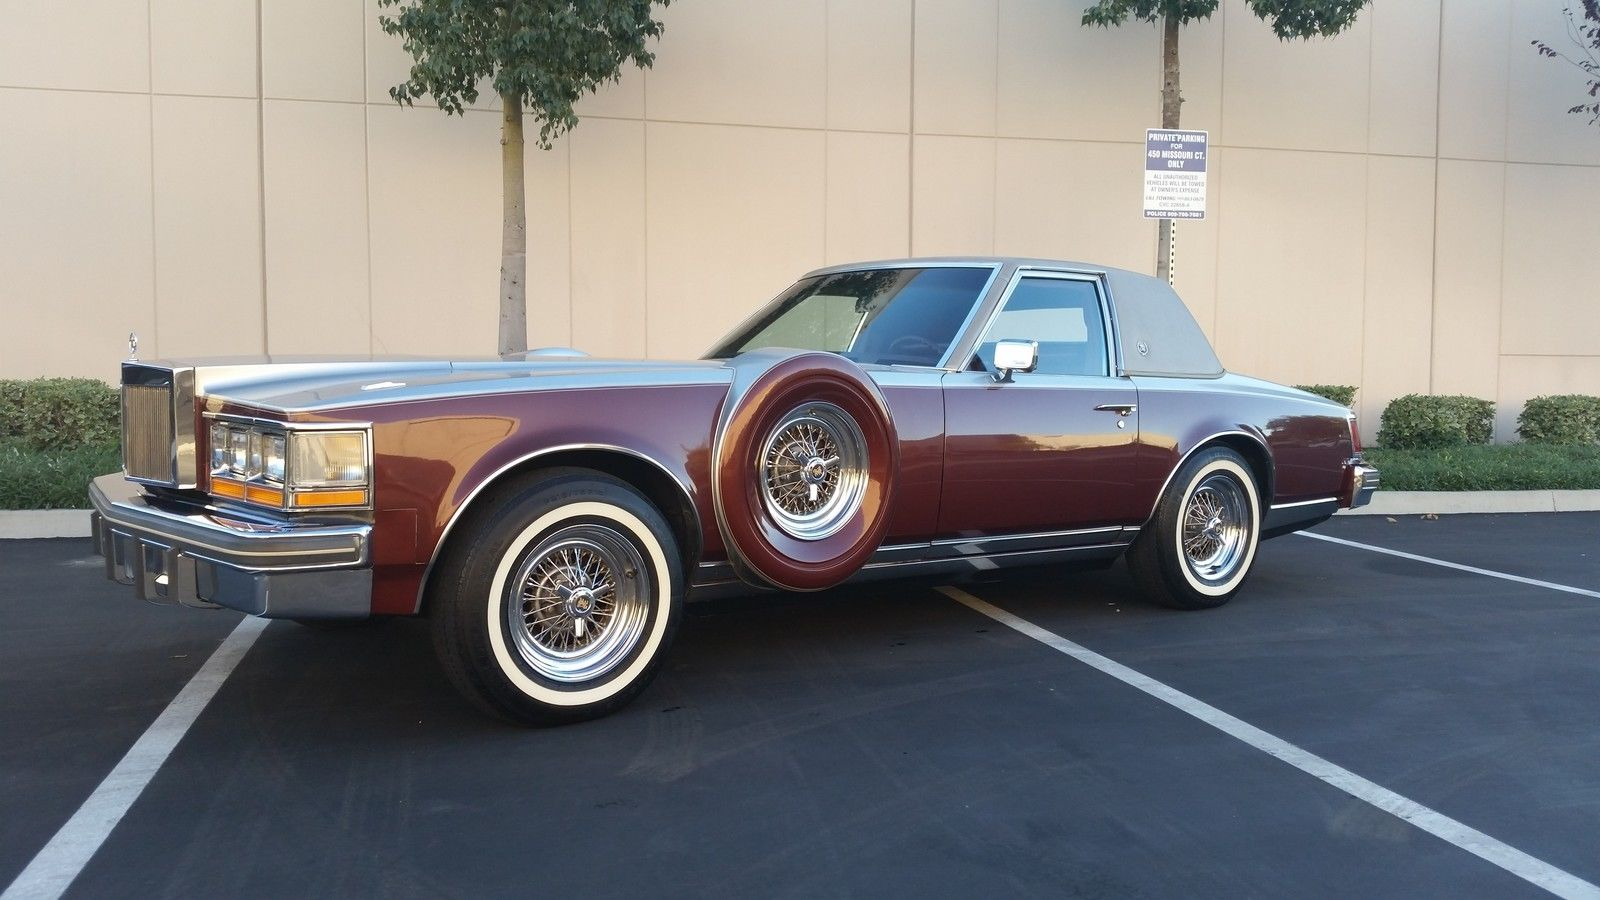 1978 Cadillac Seville Grandeur Opera Coupe >> 1978 Cadillac Opera Coupe Seville Grandeur Motor Car Corporation - Classic Cadillac Other 1978 ...